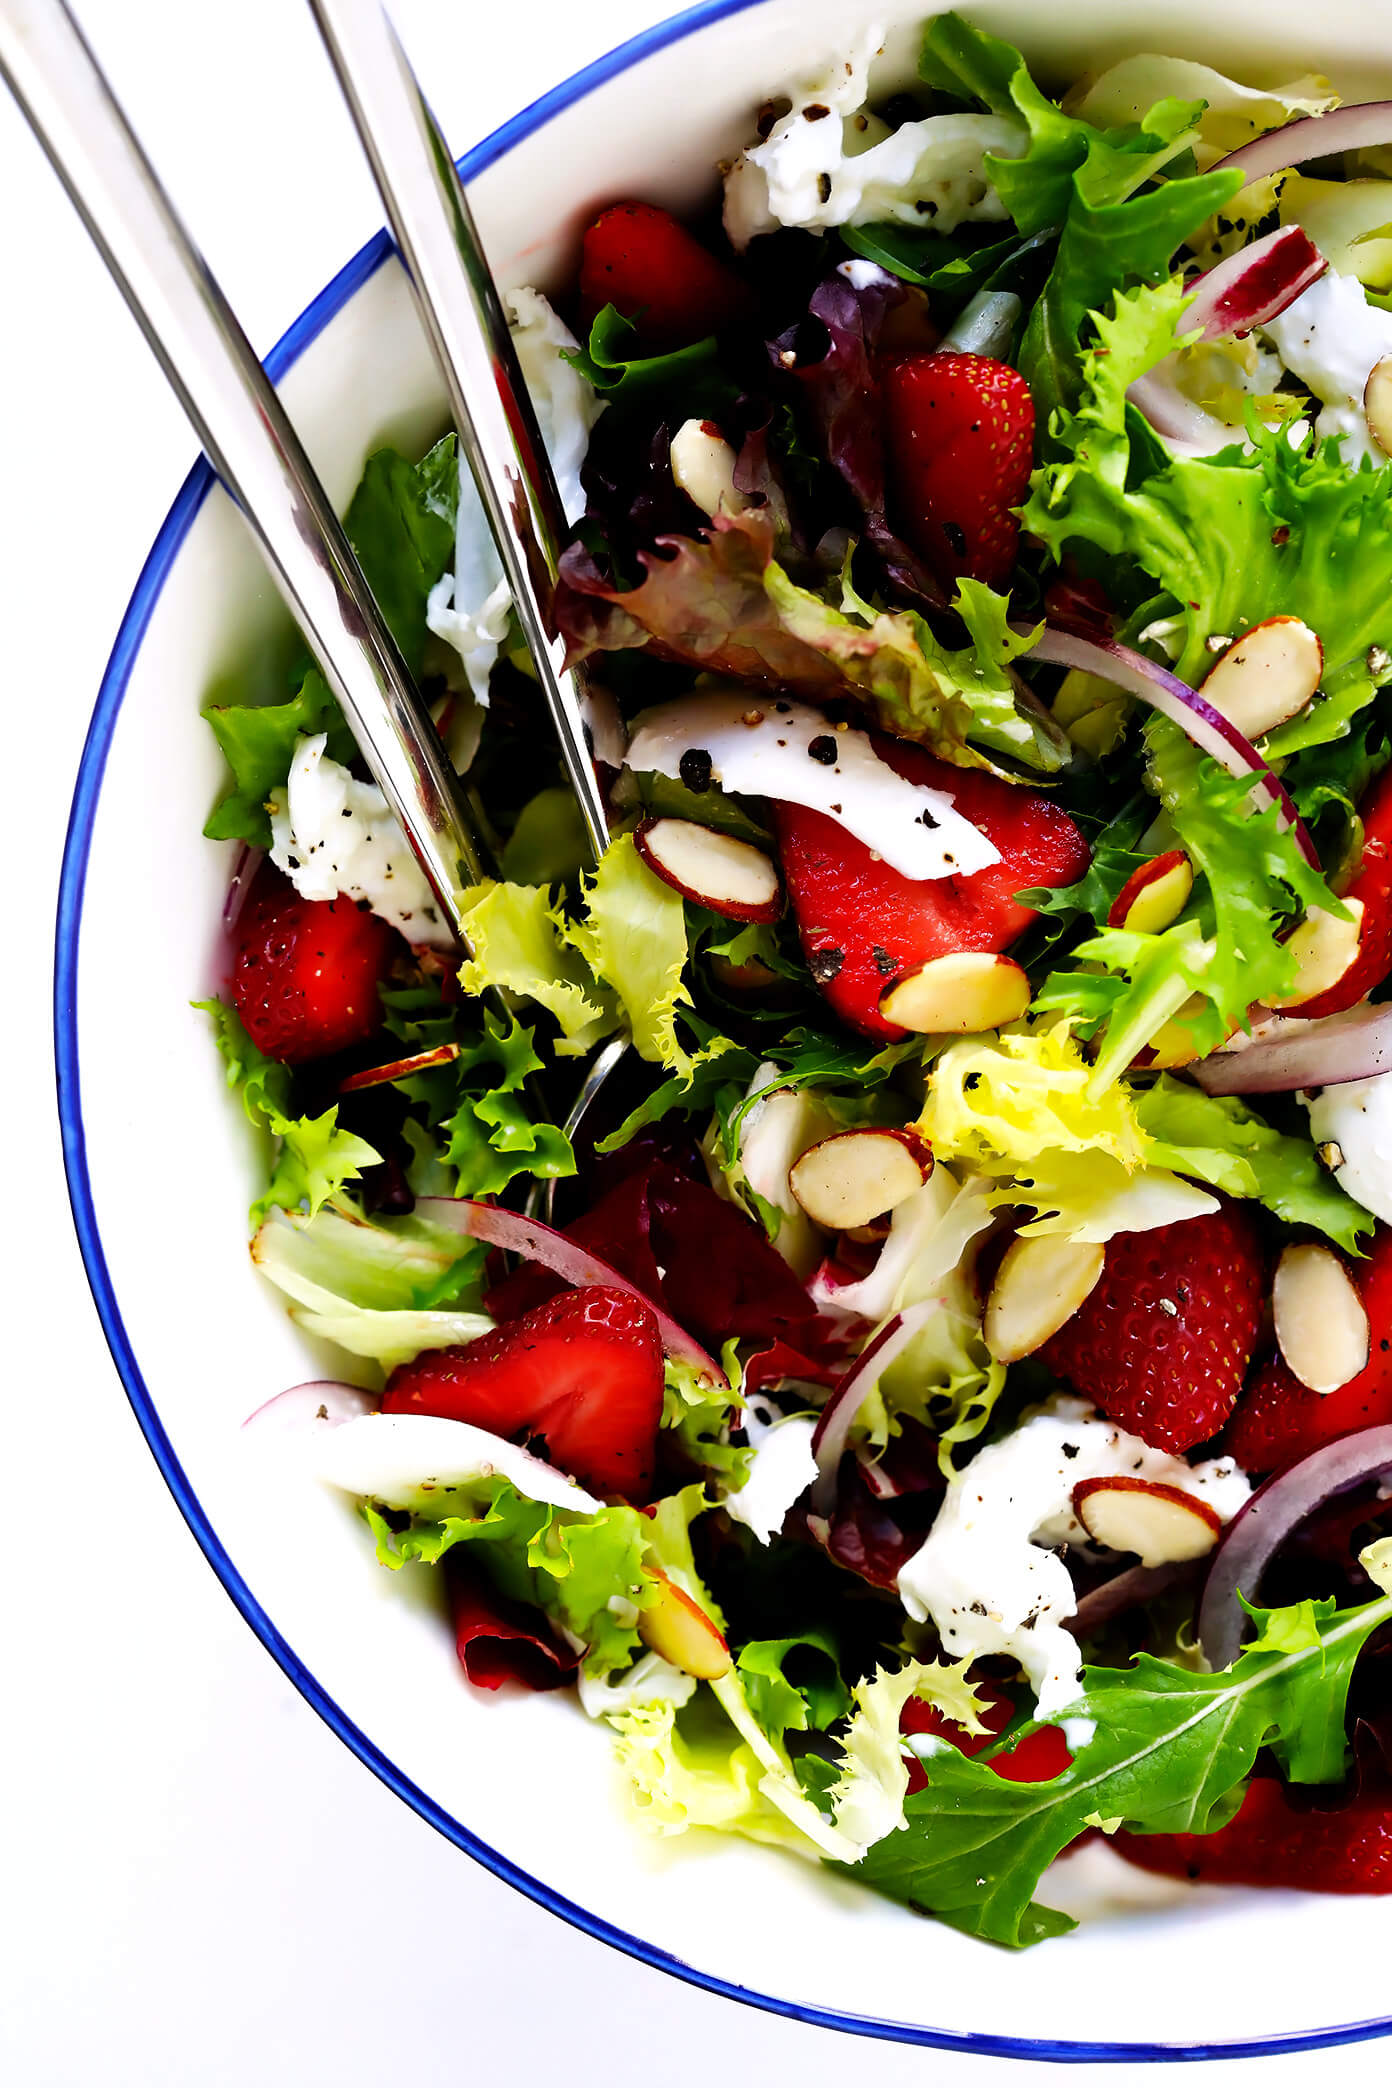 How To Make Strawberry Burrata Salad with Basil Vinaigrette